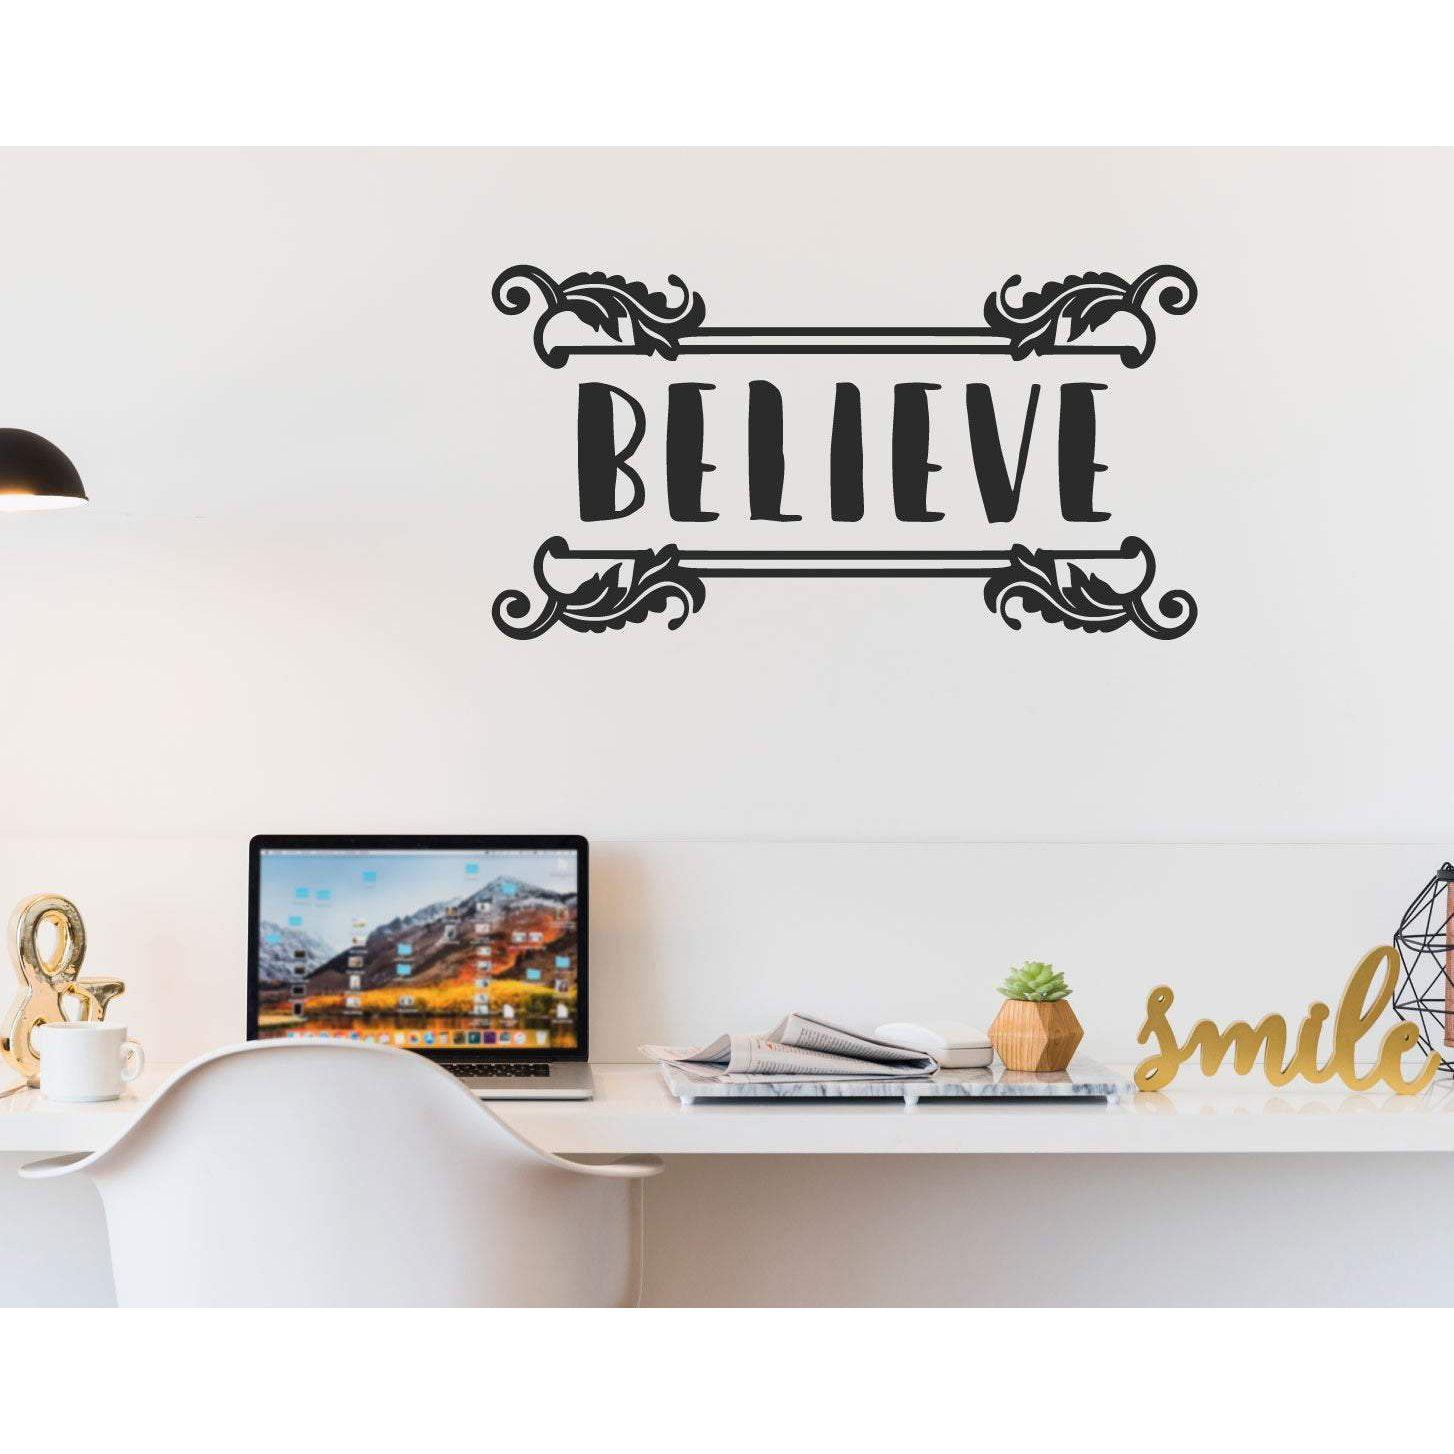 Believe Decorative Motivational Wall Sticker Quote